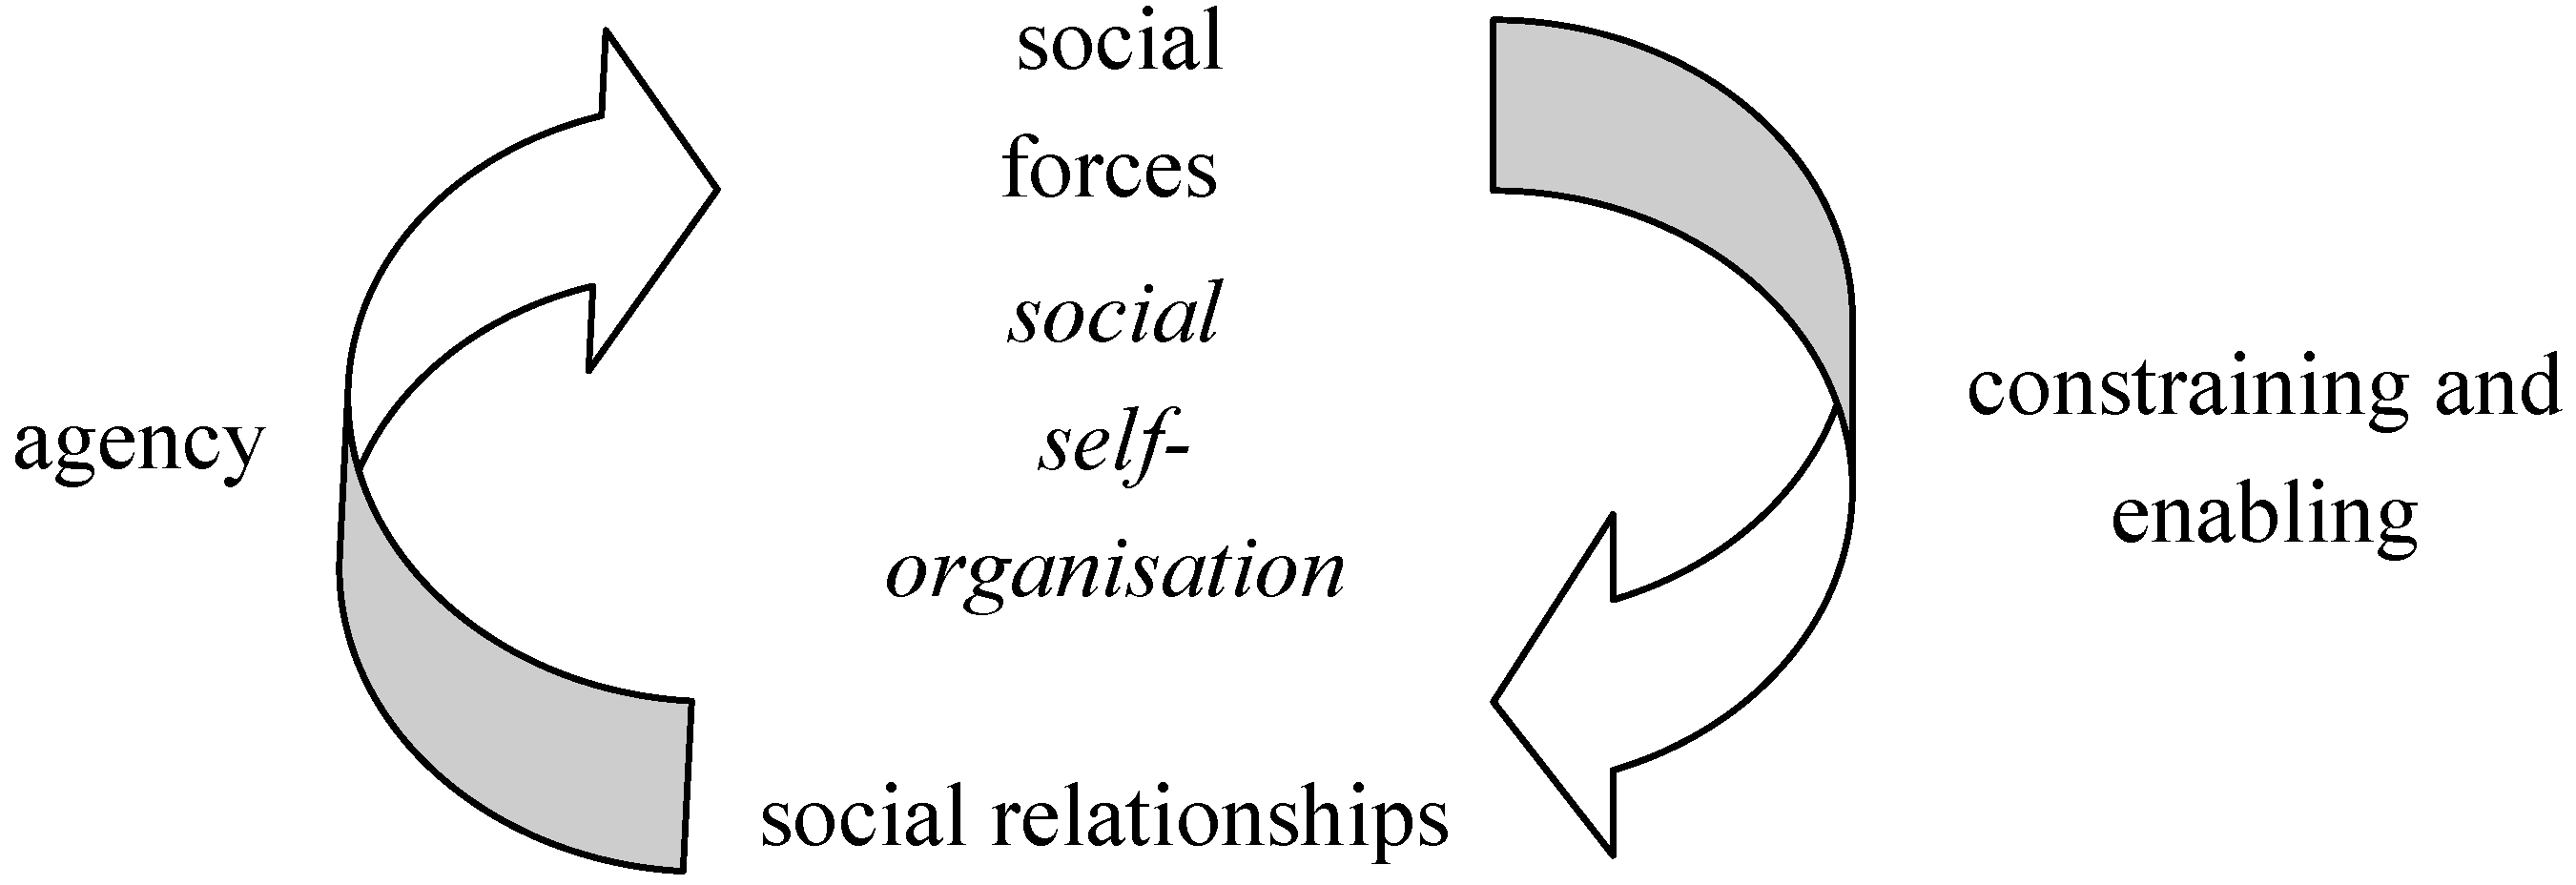 dialectic relationship of society and individual liberty